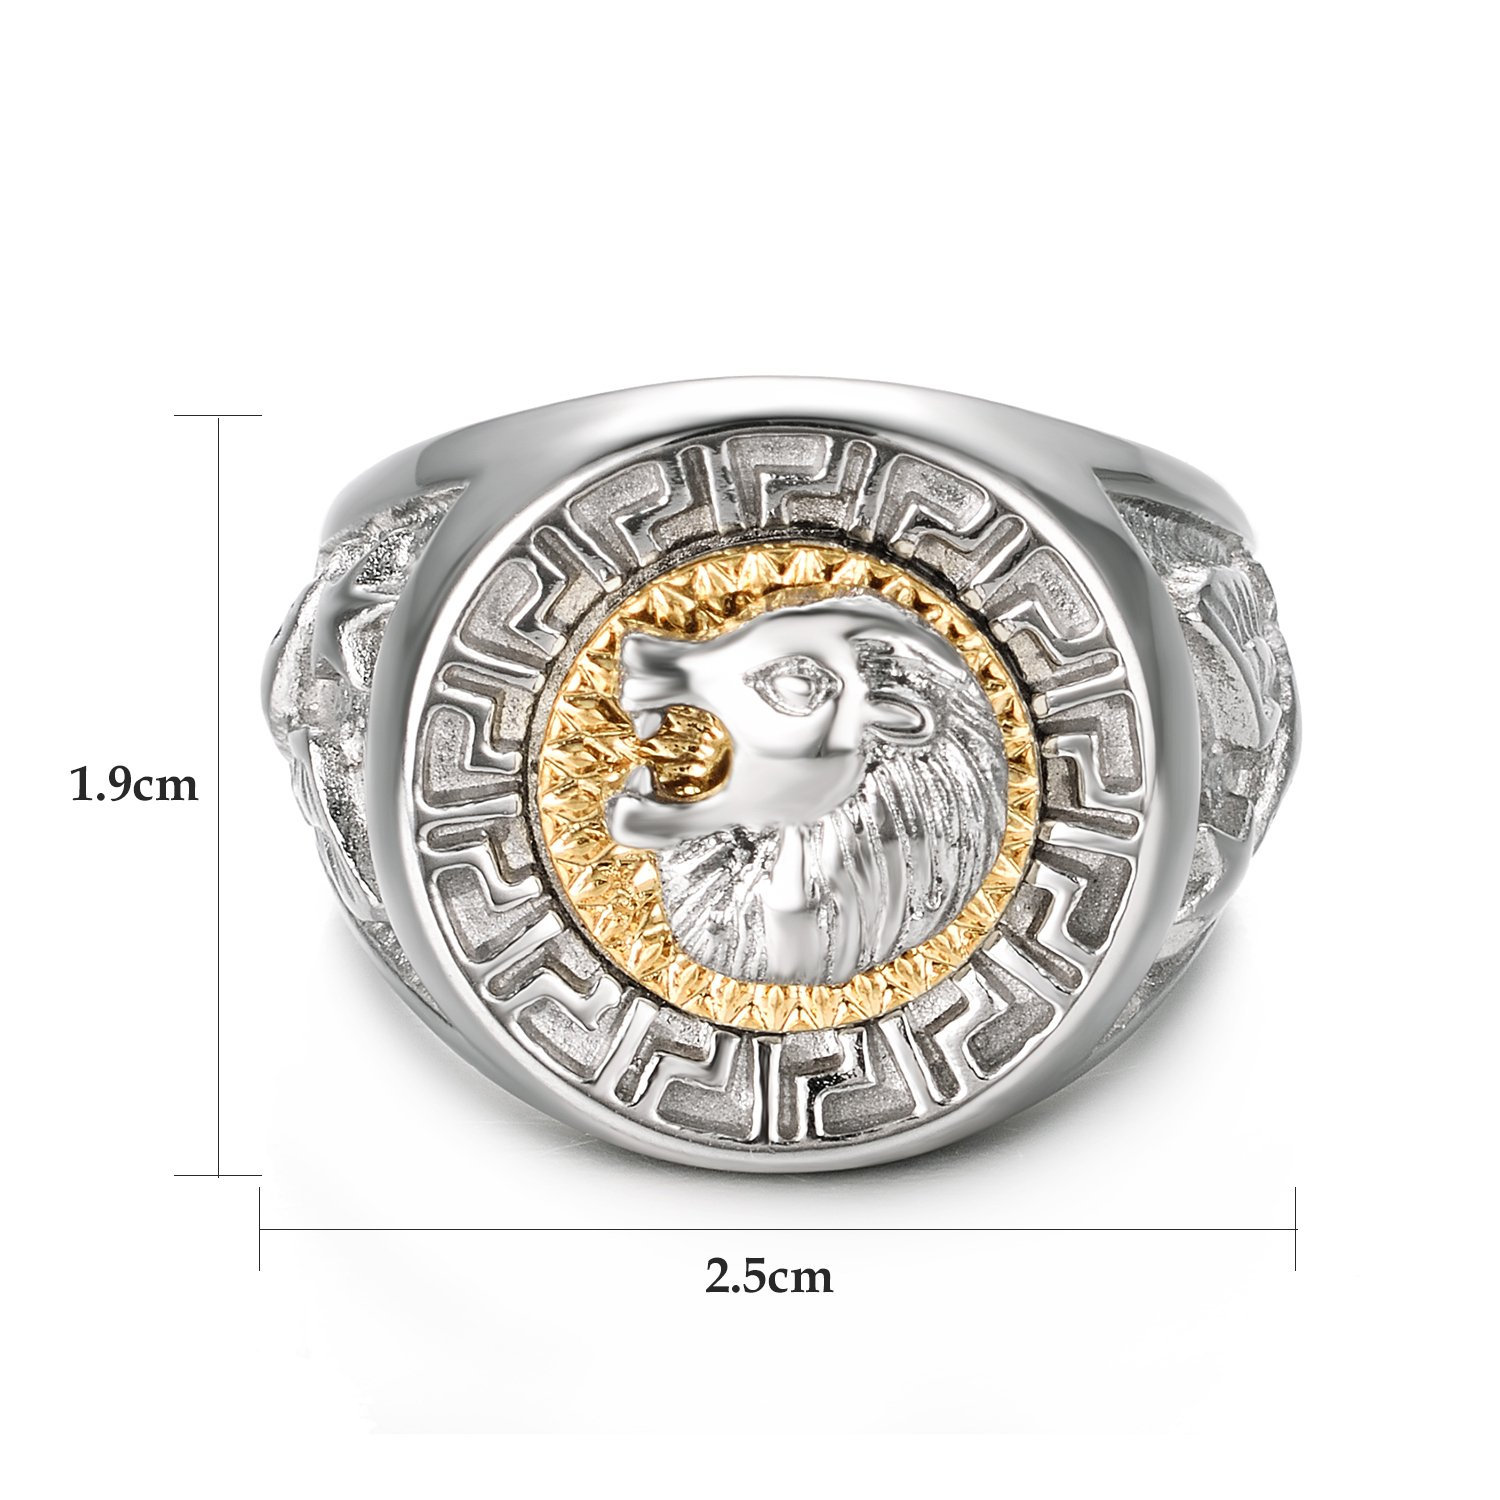 Yoursfs Lion Ring 18K Gold/Sliver Plated Hip Hop Ring Lion Ring Men's Titanium Ring (White, 12) by Yoursfs (Image #2)